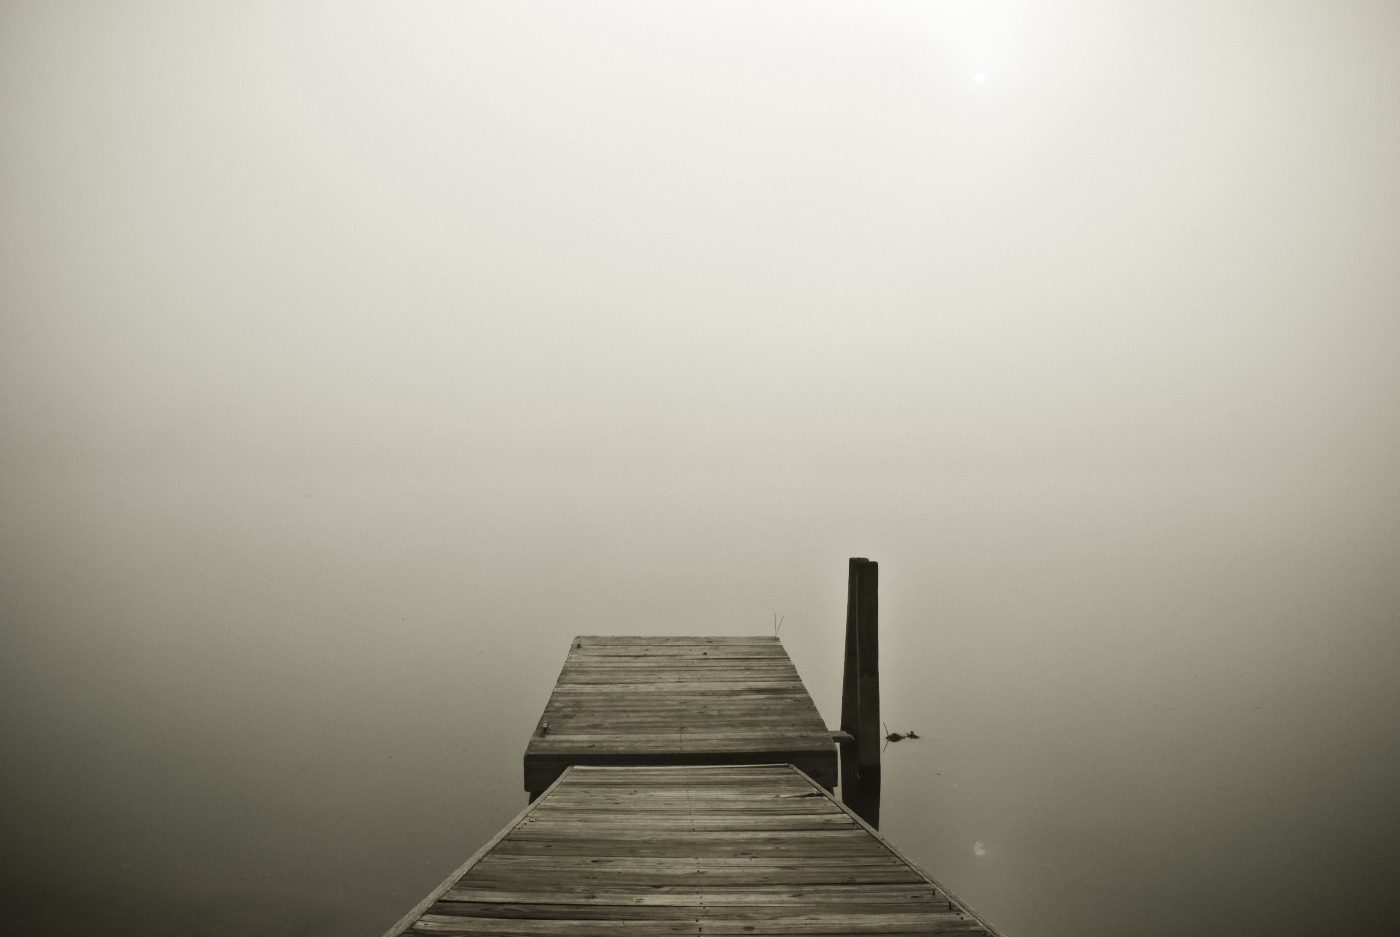 A crude wooden pier disappearing into mist